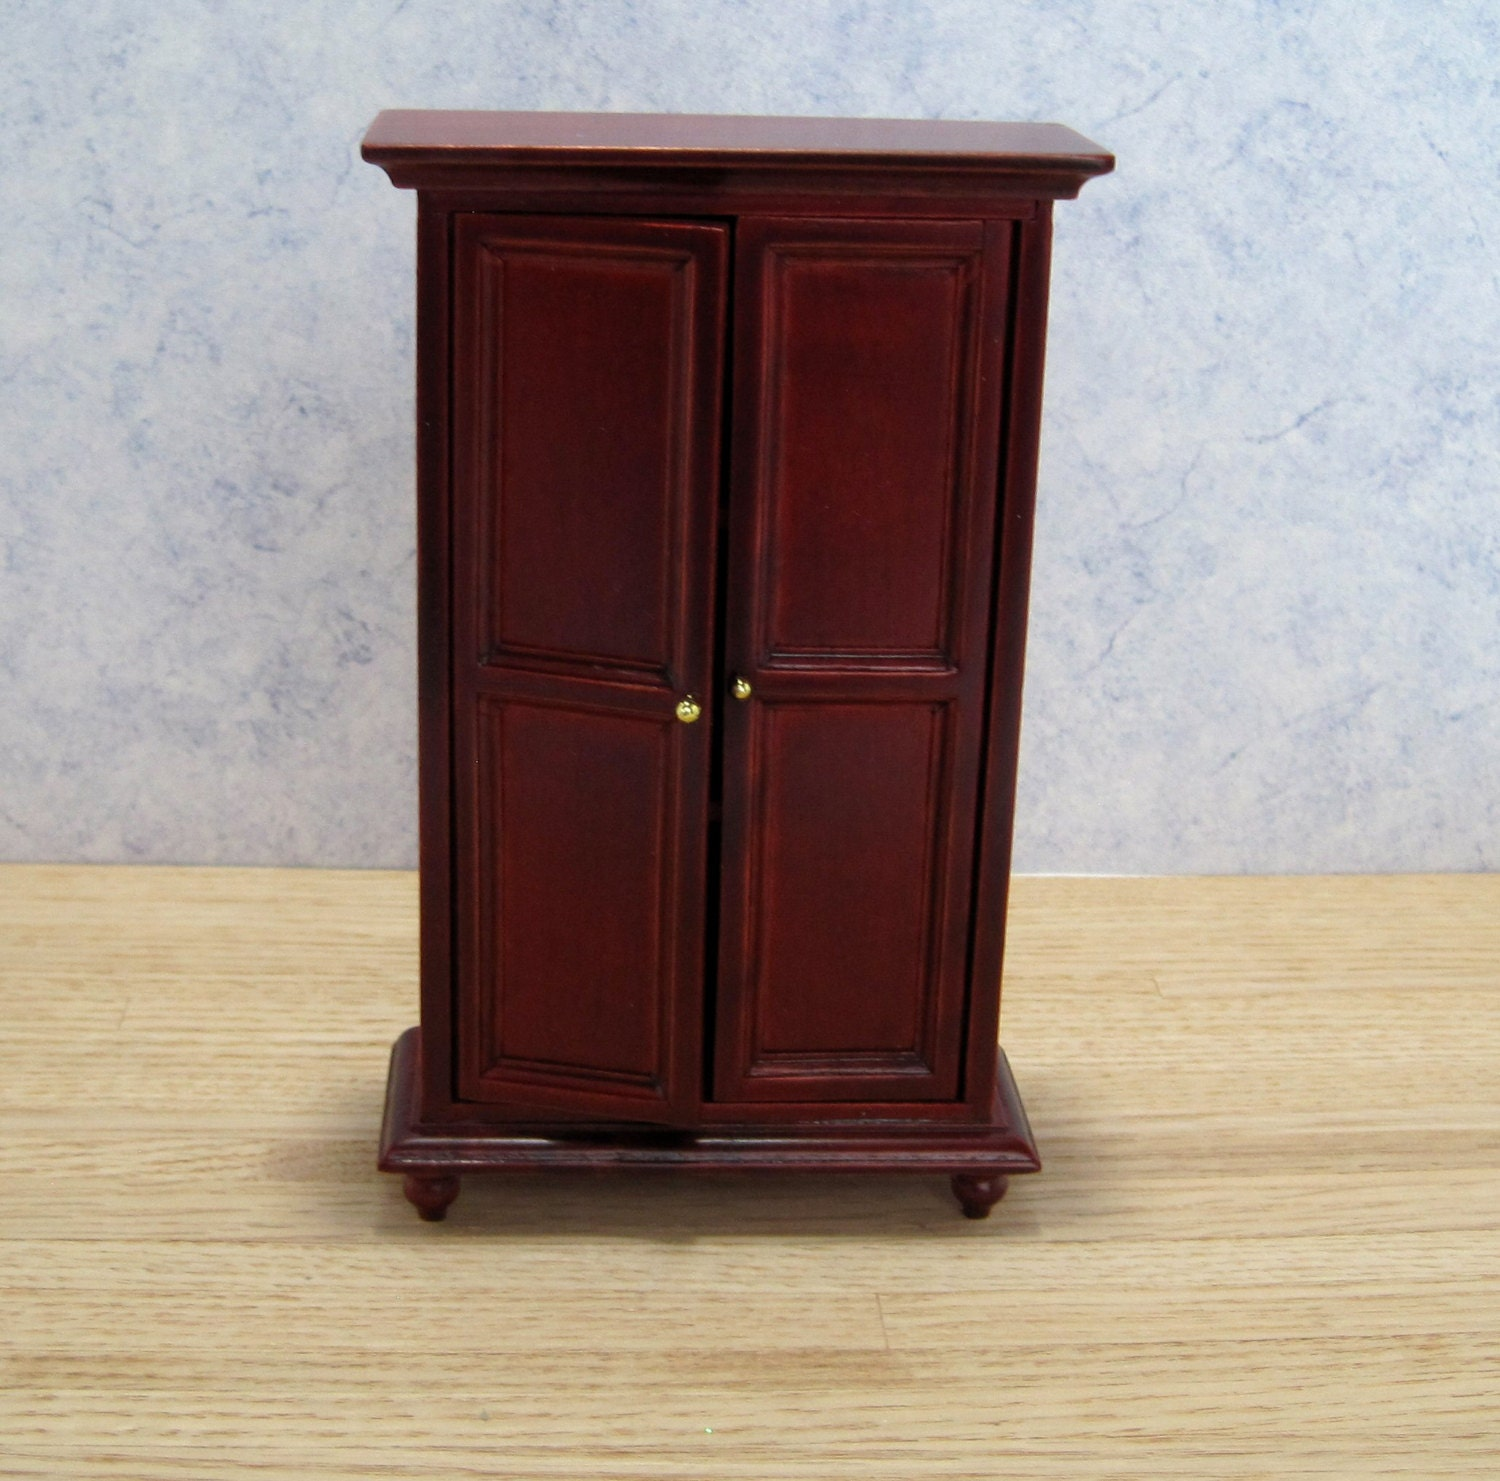 Vintage wardrobe armoire dollhouse miniature